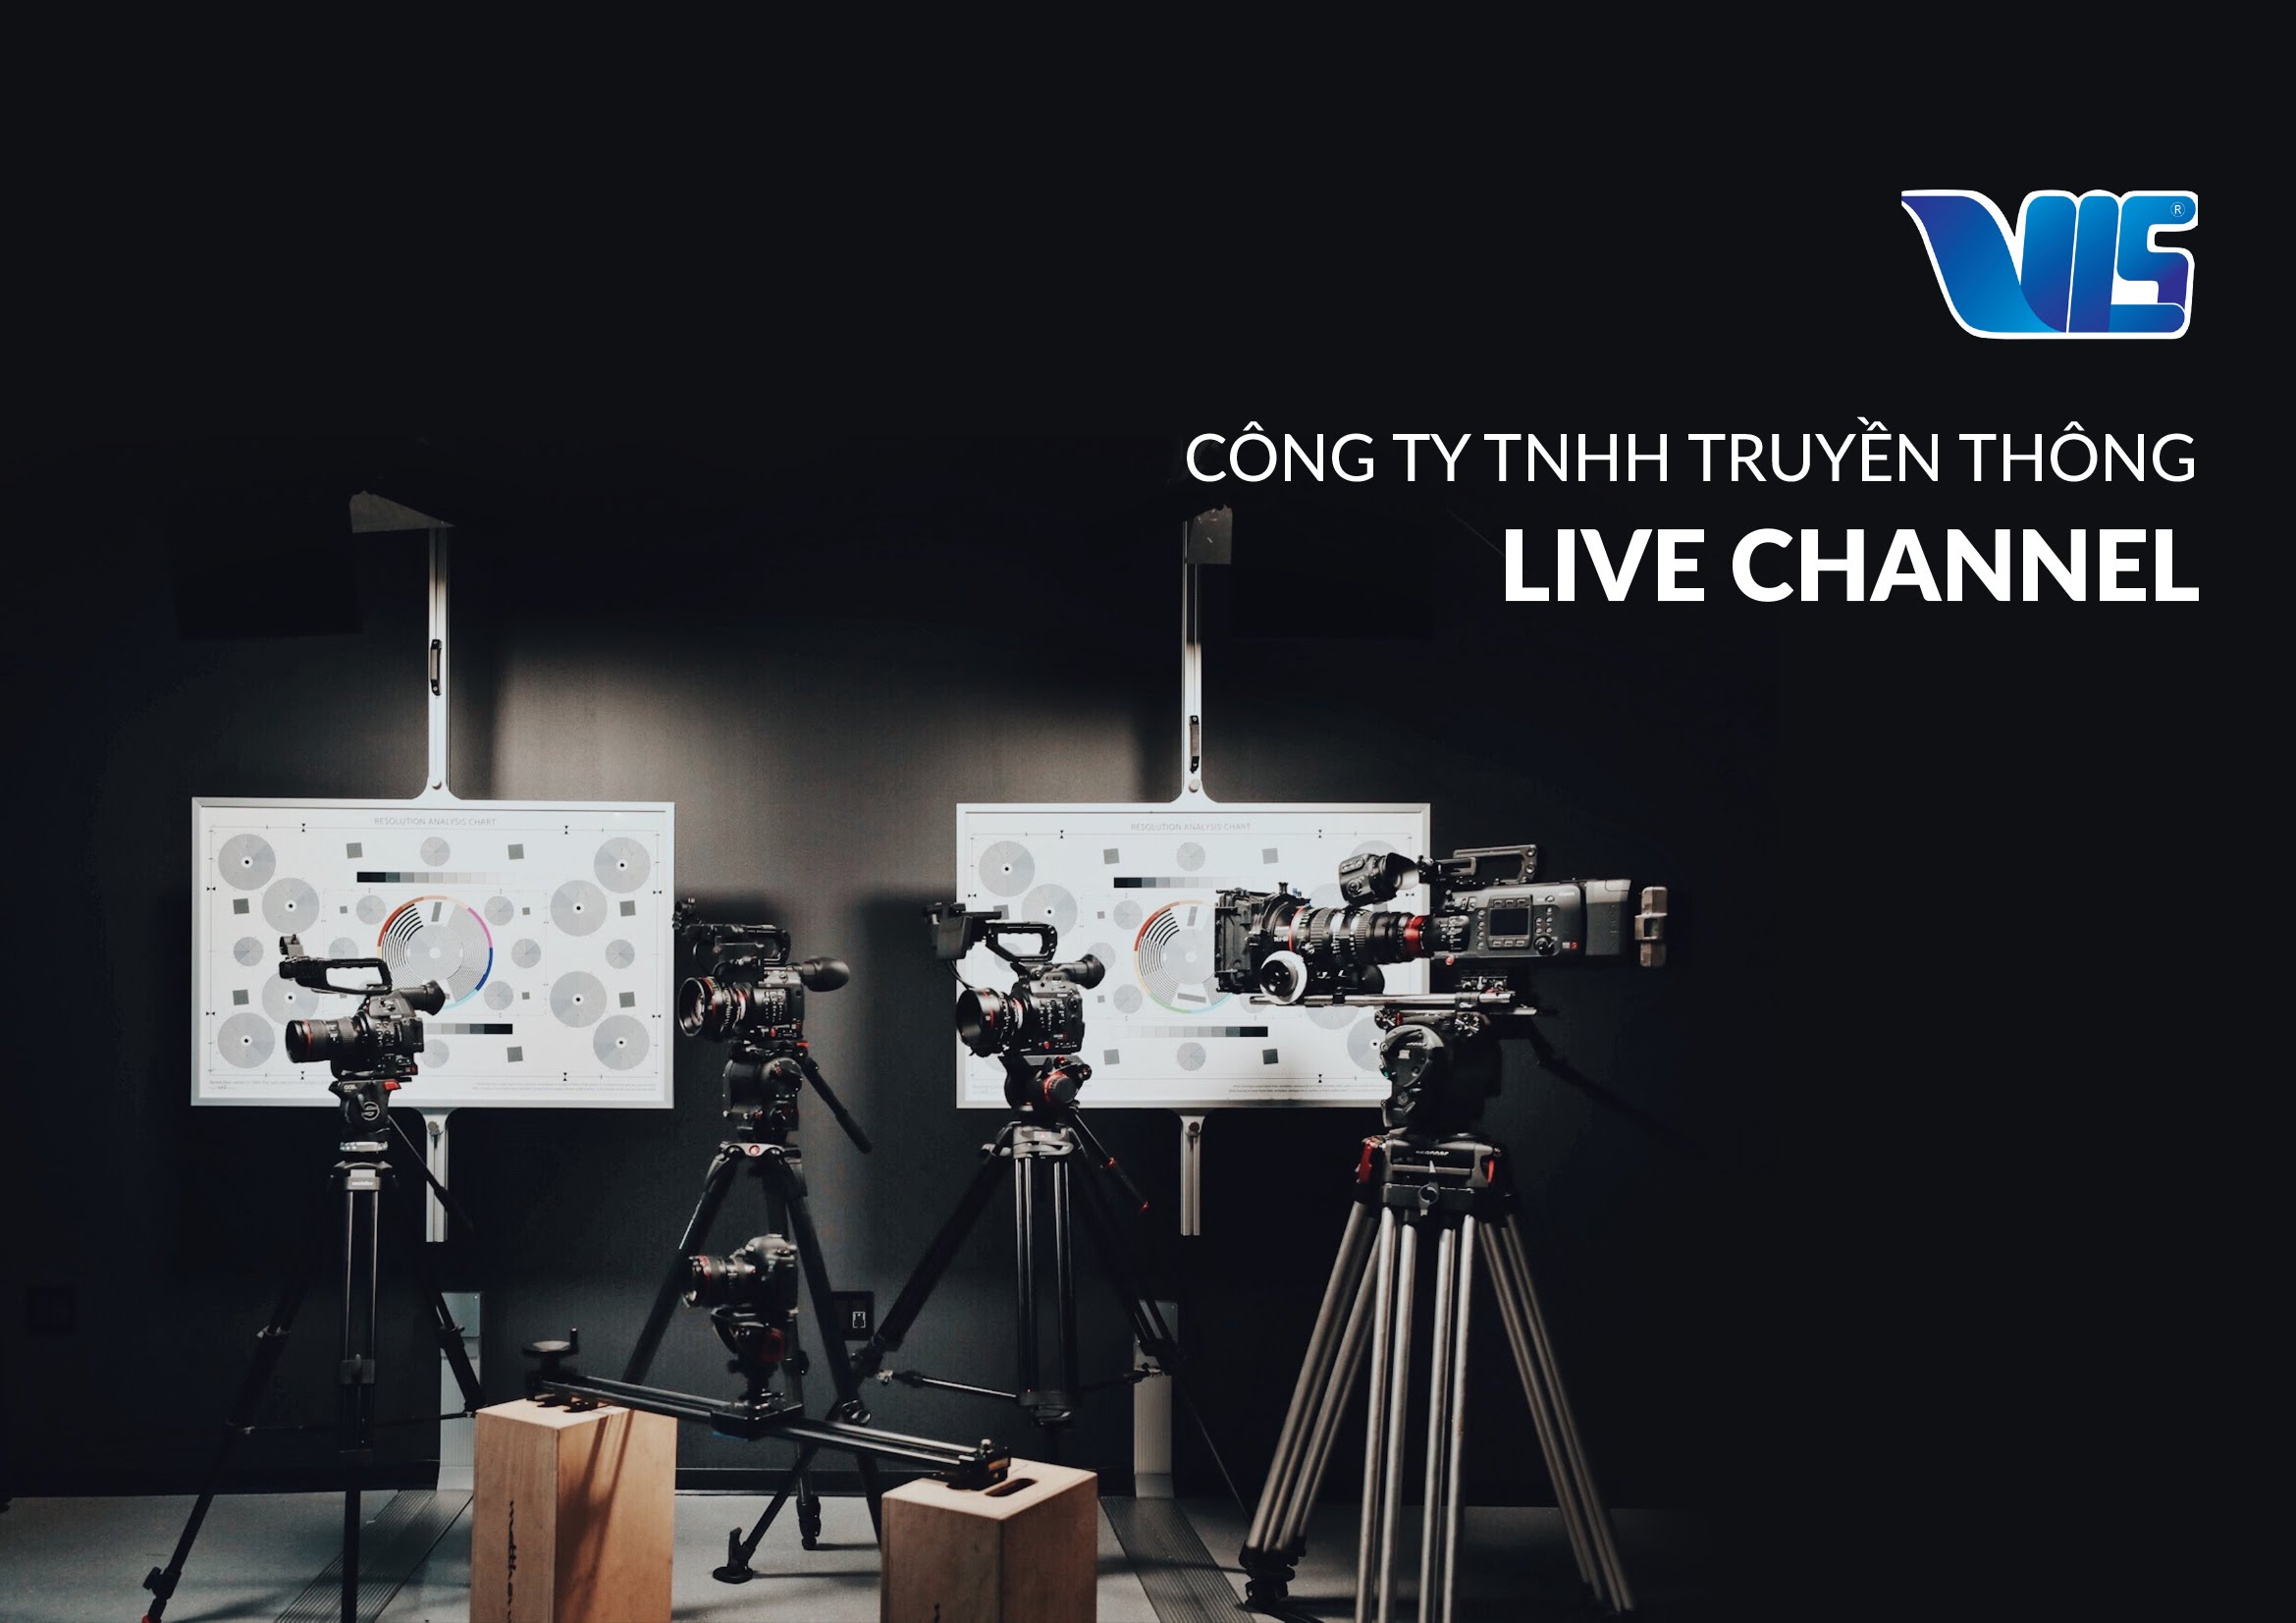 https://livechannel.vn/dich-vu